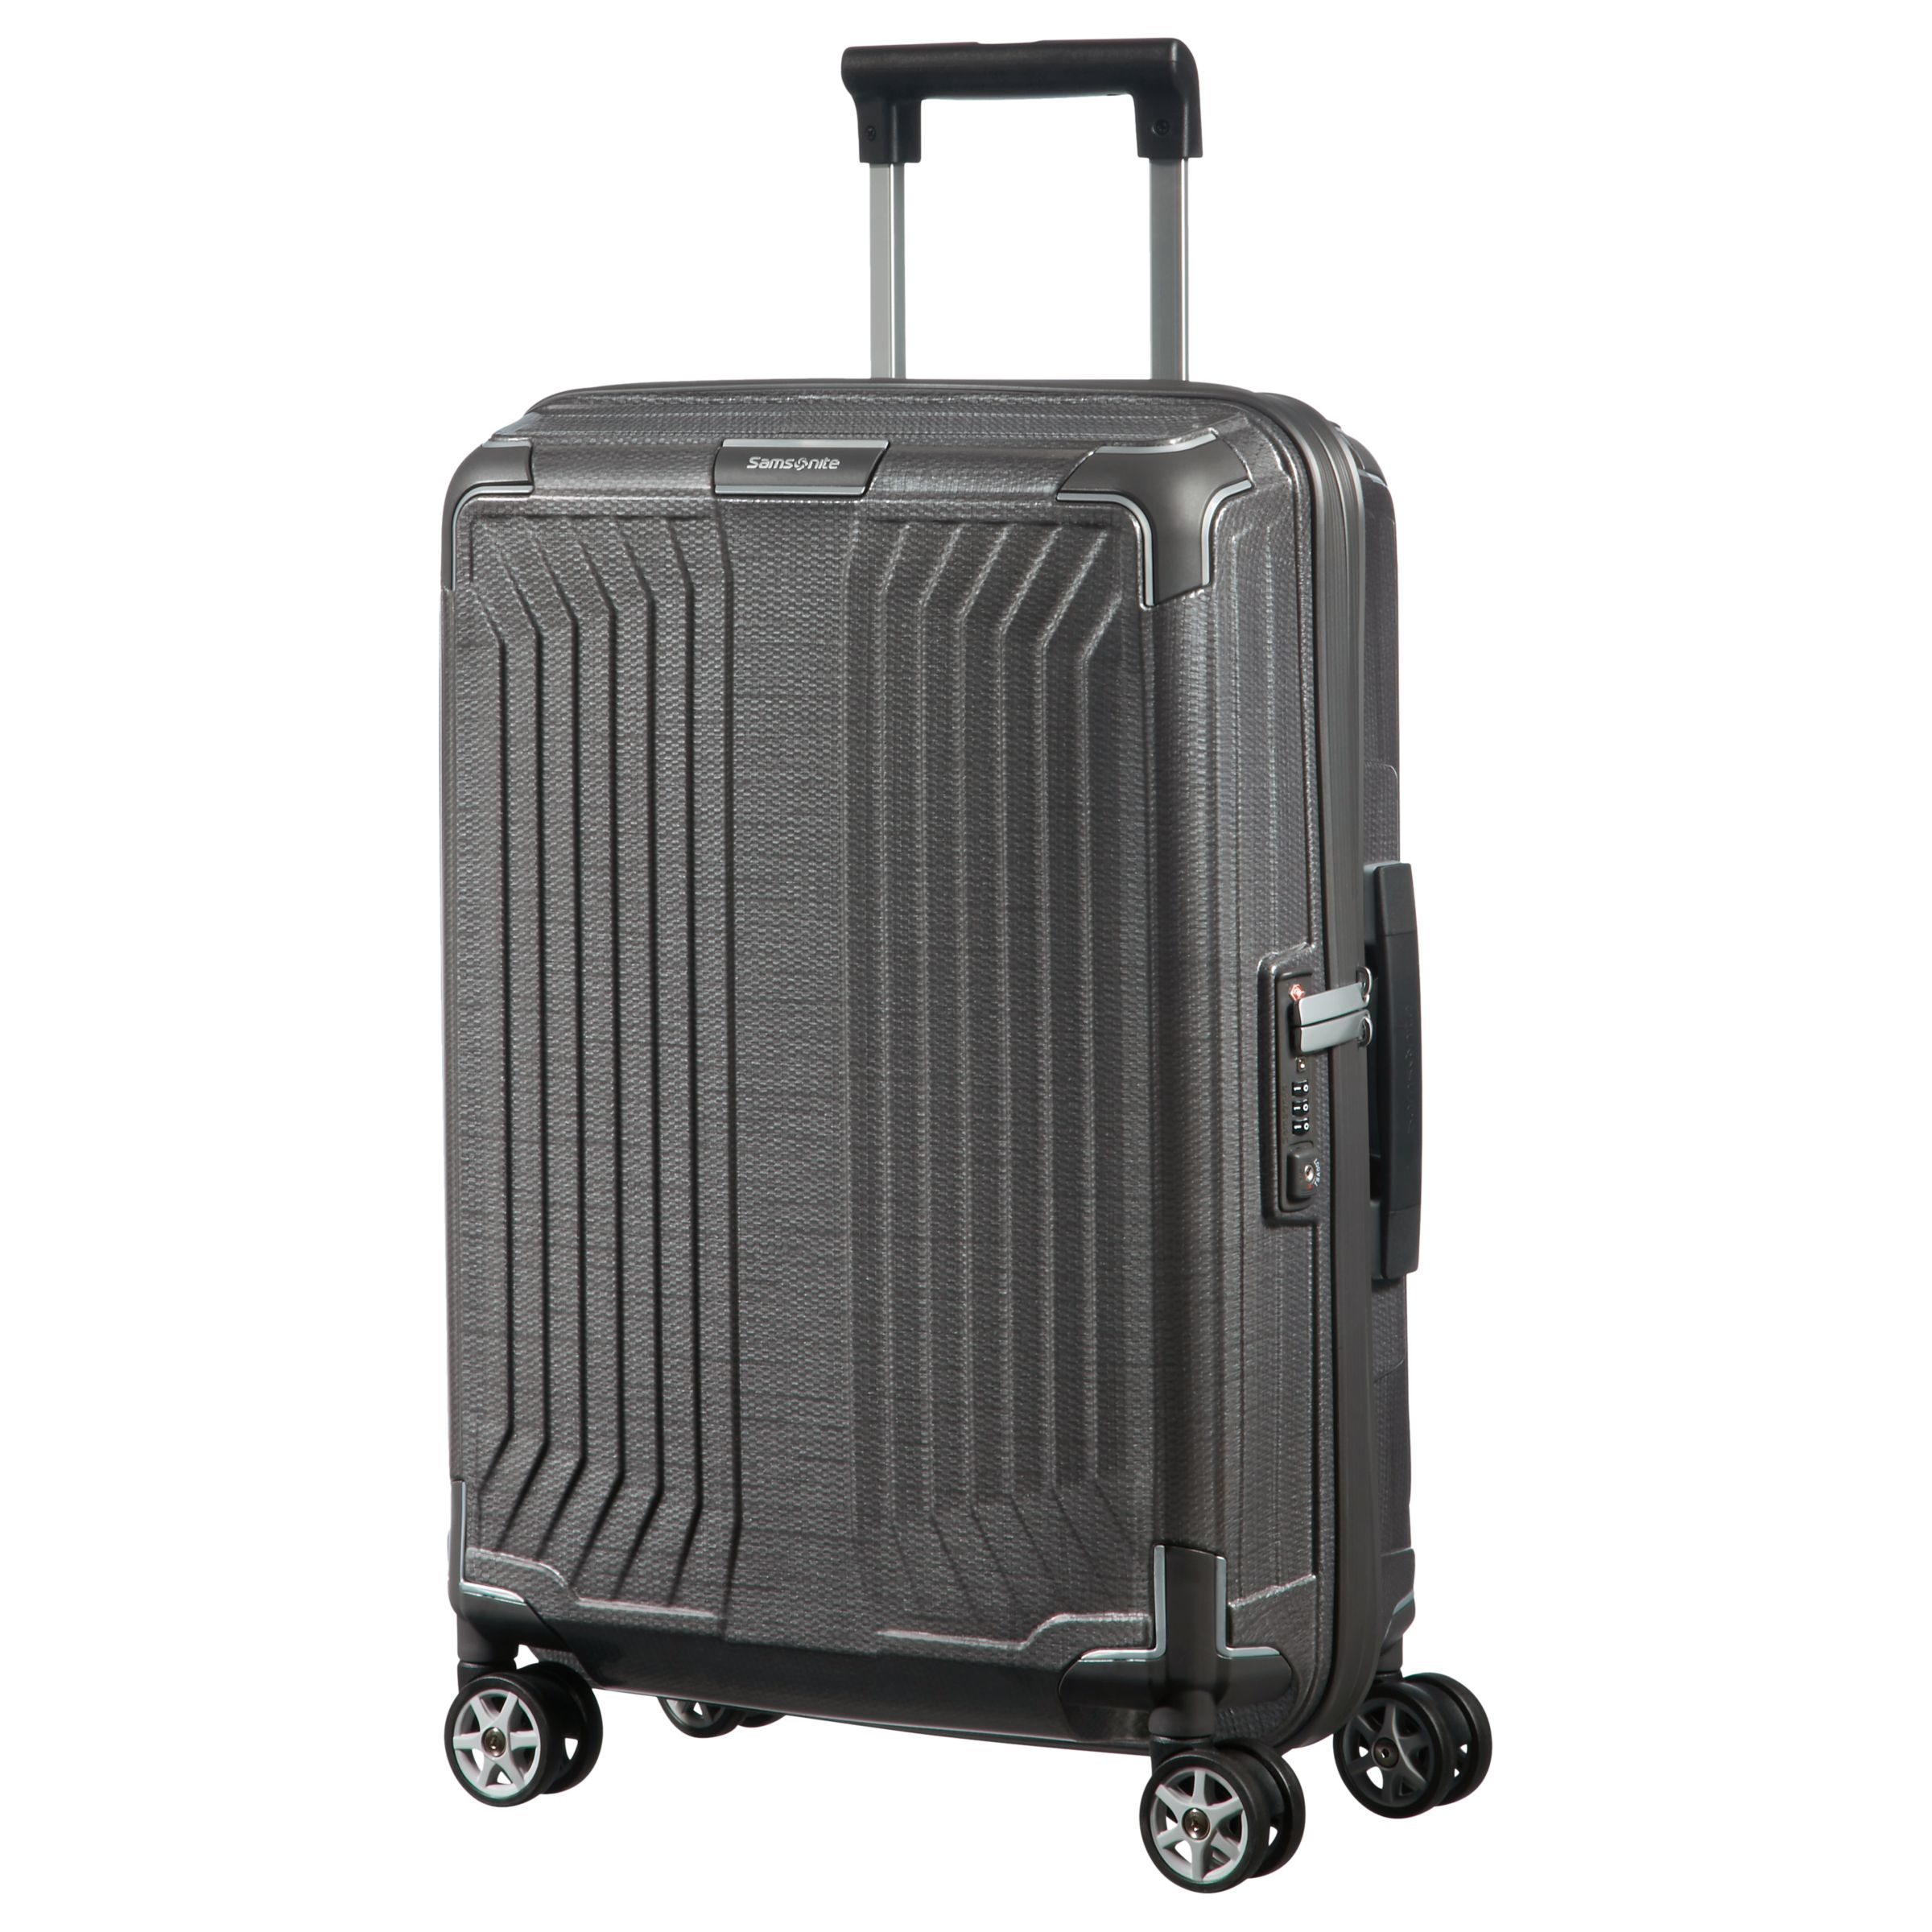 samsonite lite box 55cm 4 spinner cabin case gay times. Black Bedroom Furniture Sets. Home Design Ideas